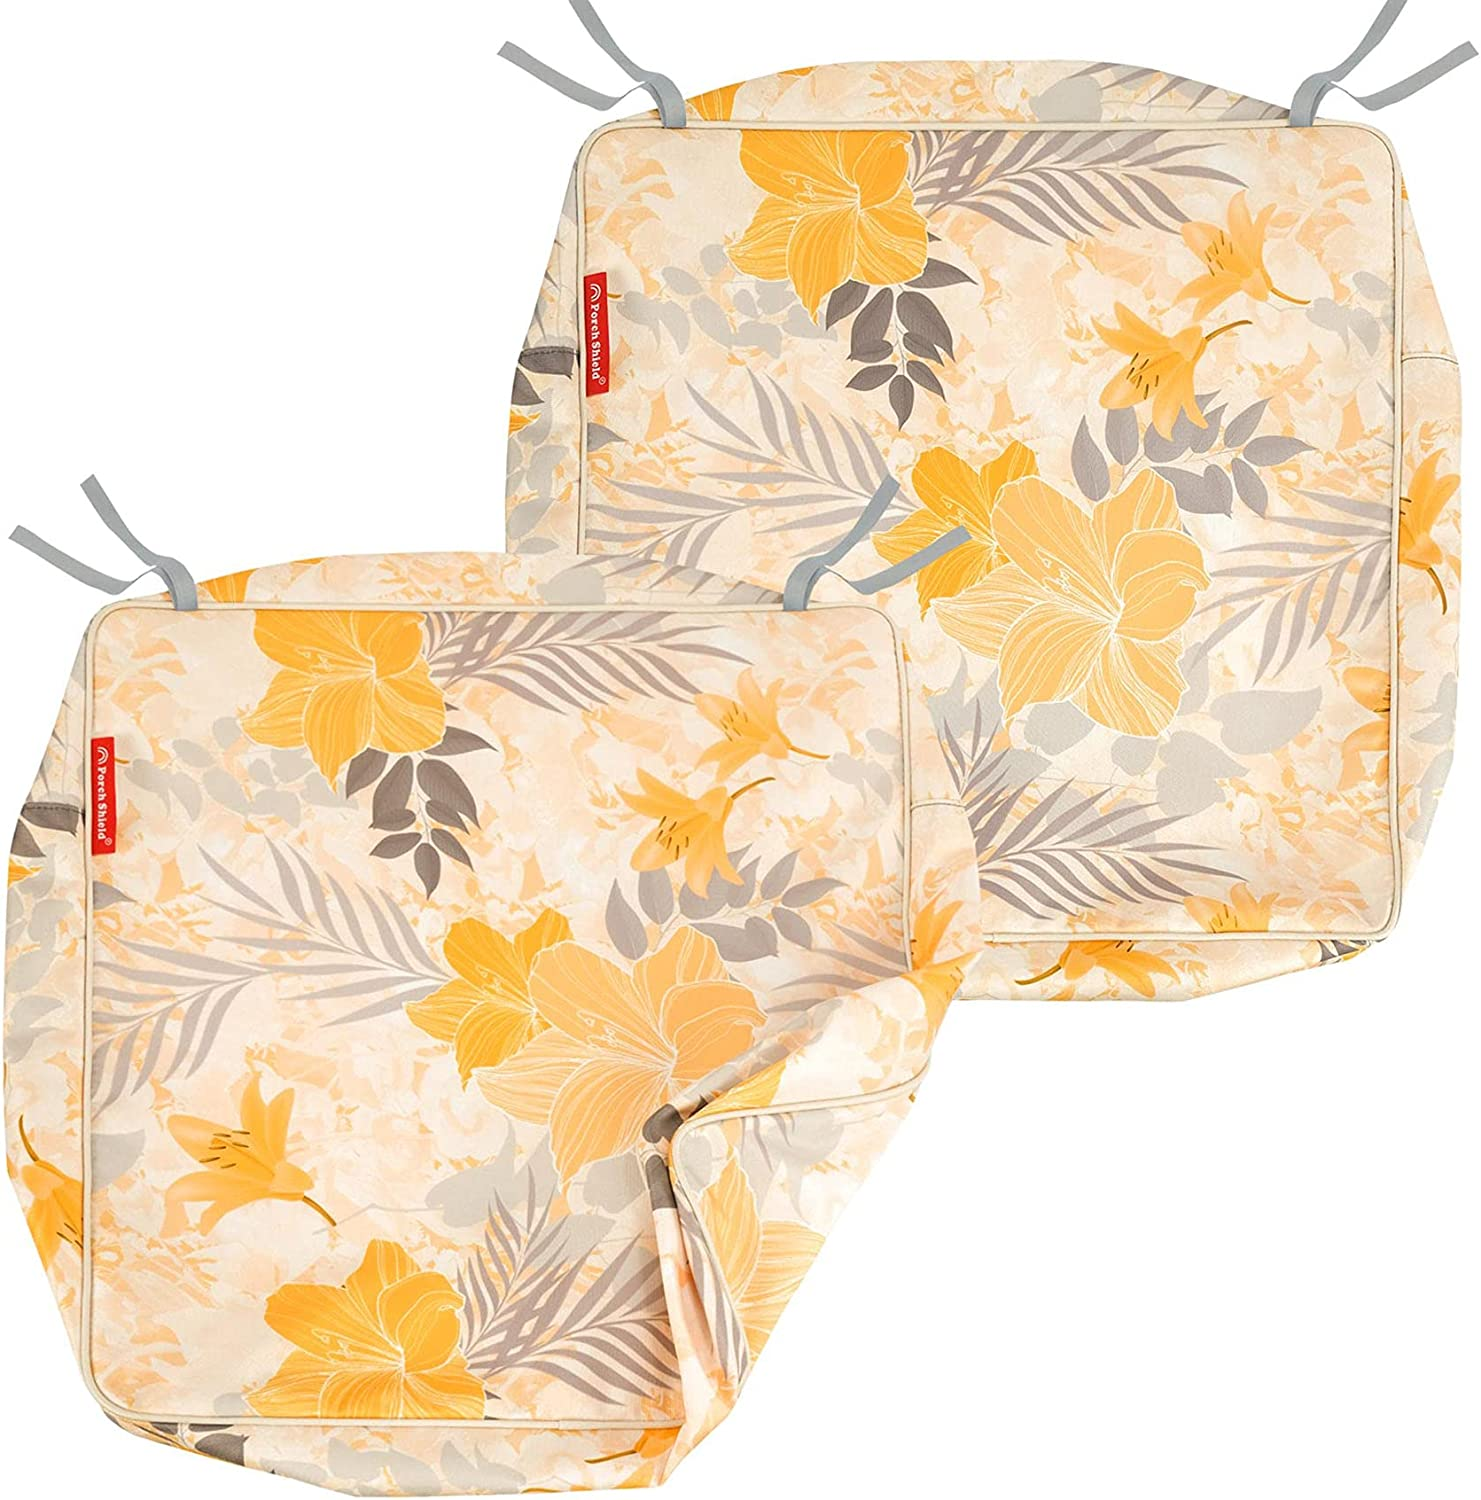 Porch Shield Outdoor Cushion Covers 19 X 19, Square Patio Chair Seat Covers, Waterproof Square Cushion Slipcovers Replacement 2 Pack